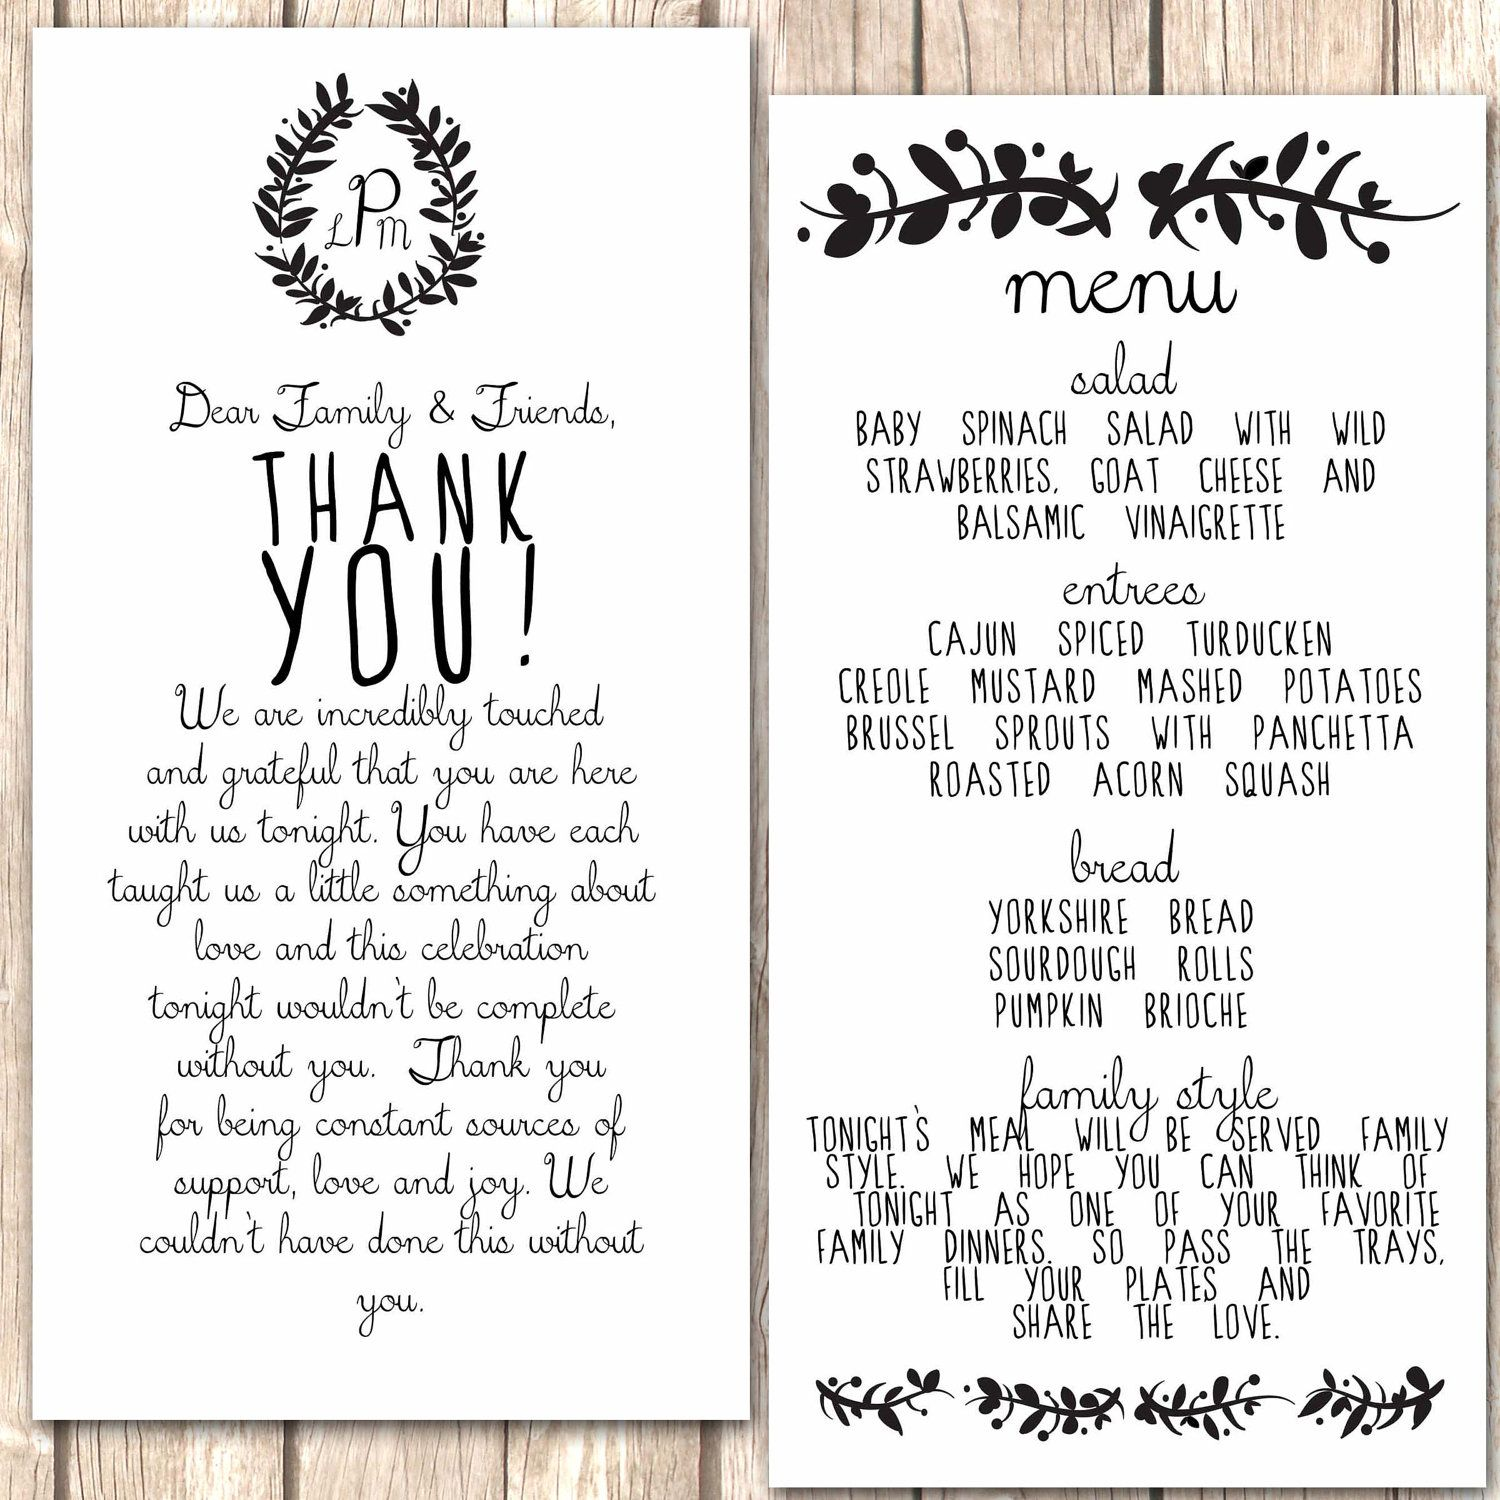 whimsical menu and thank you card for wedding dinner wedding